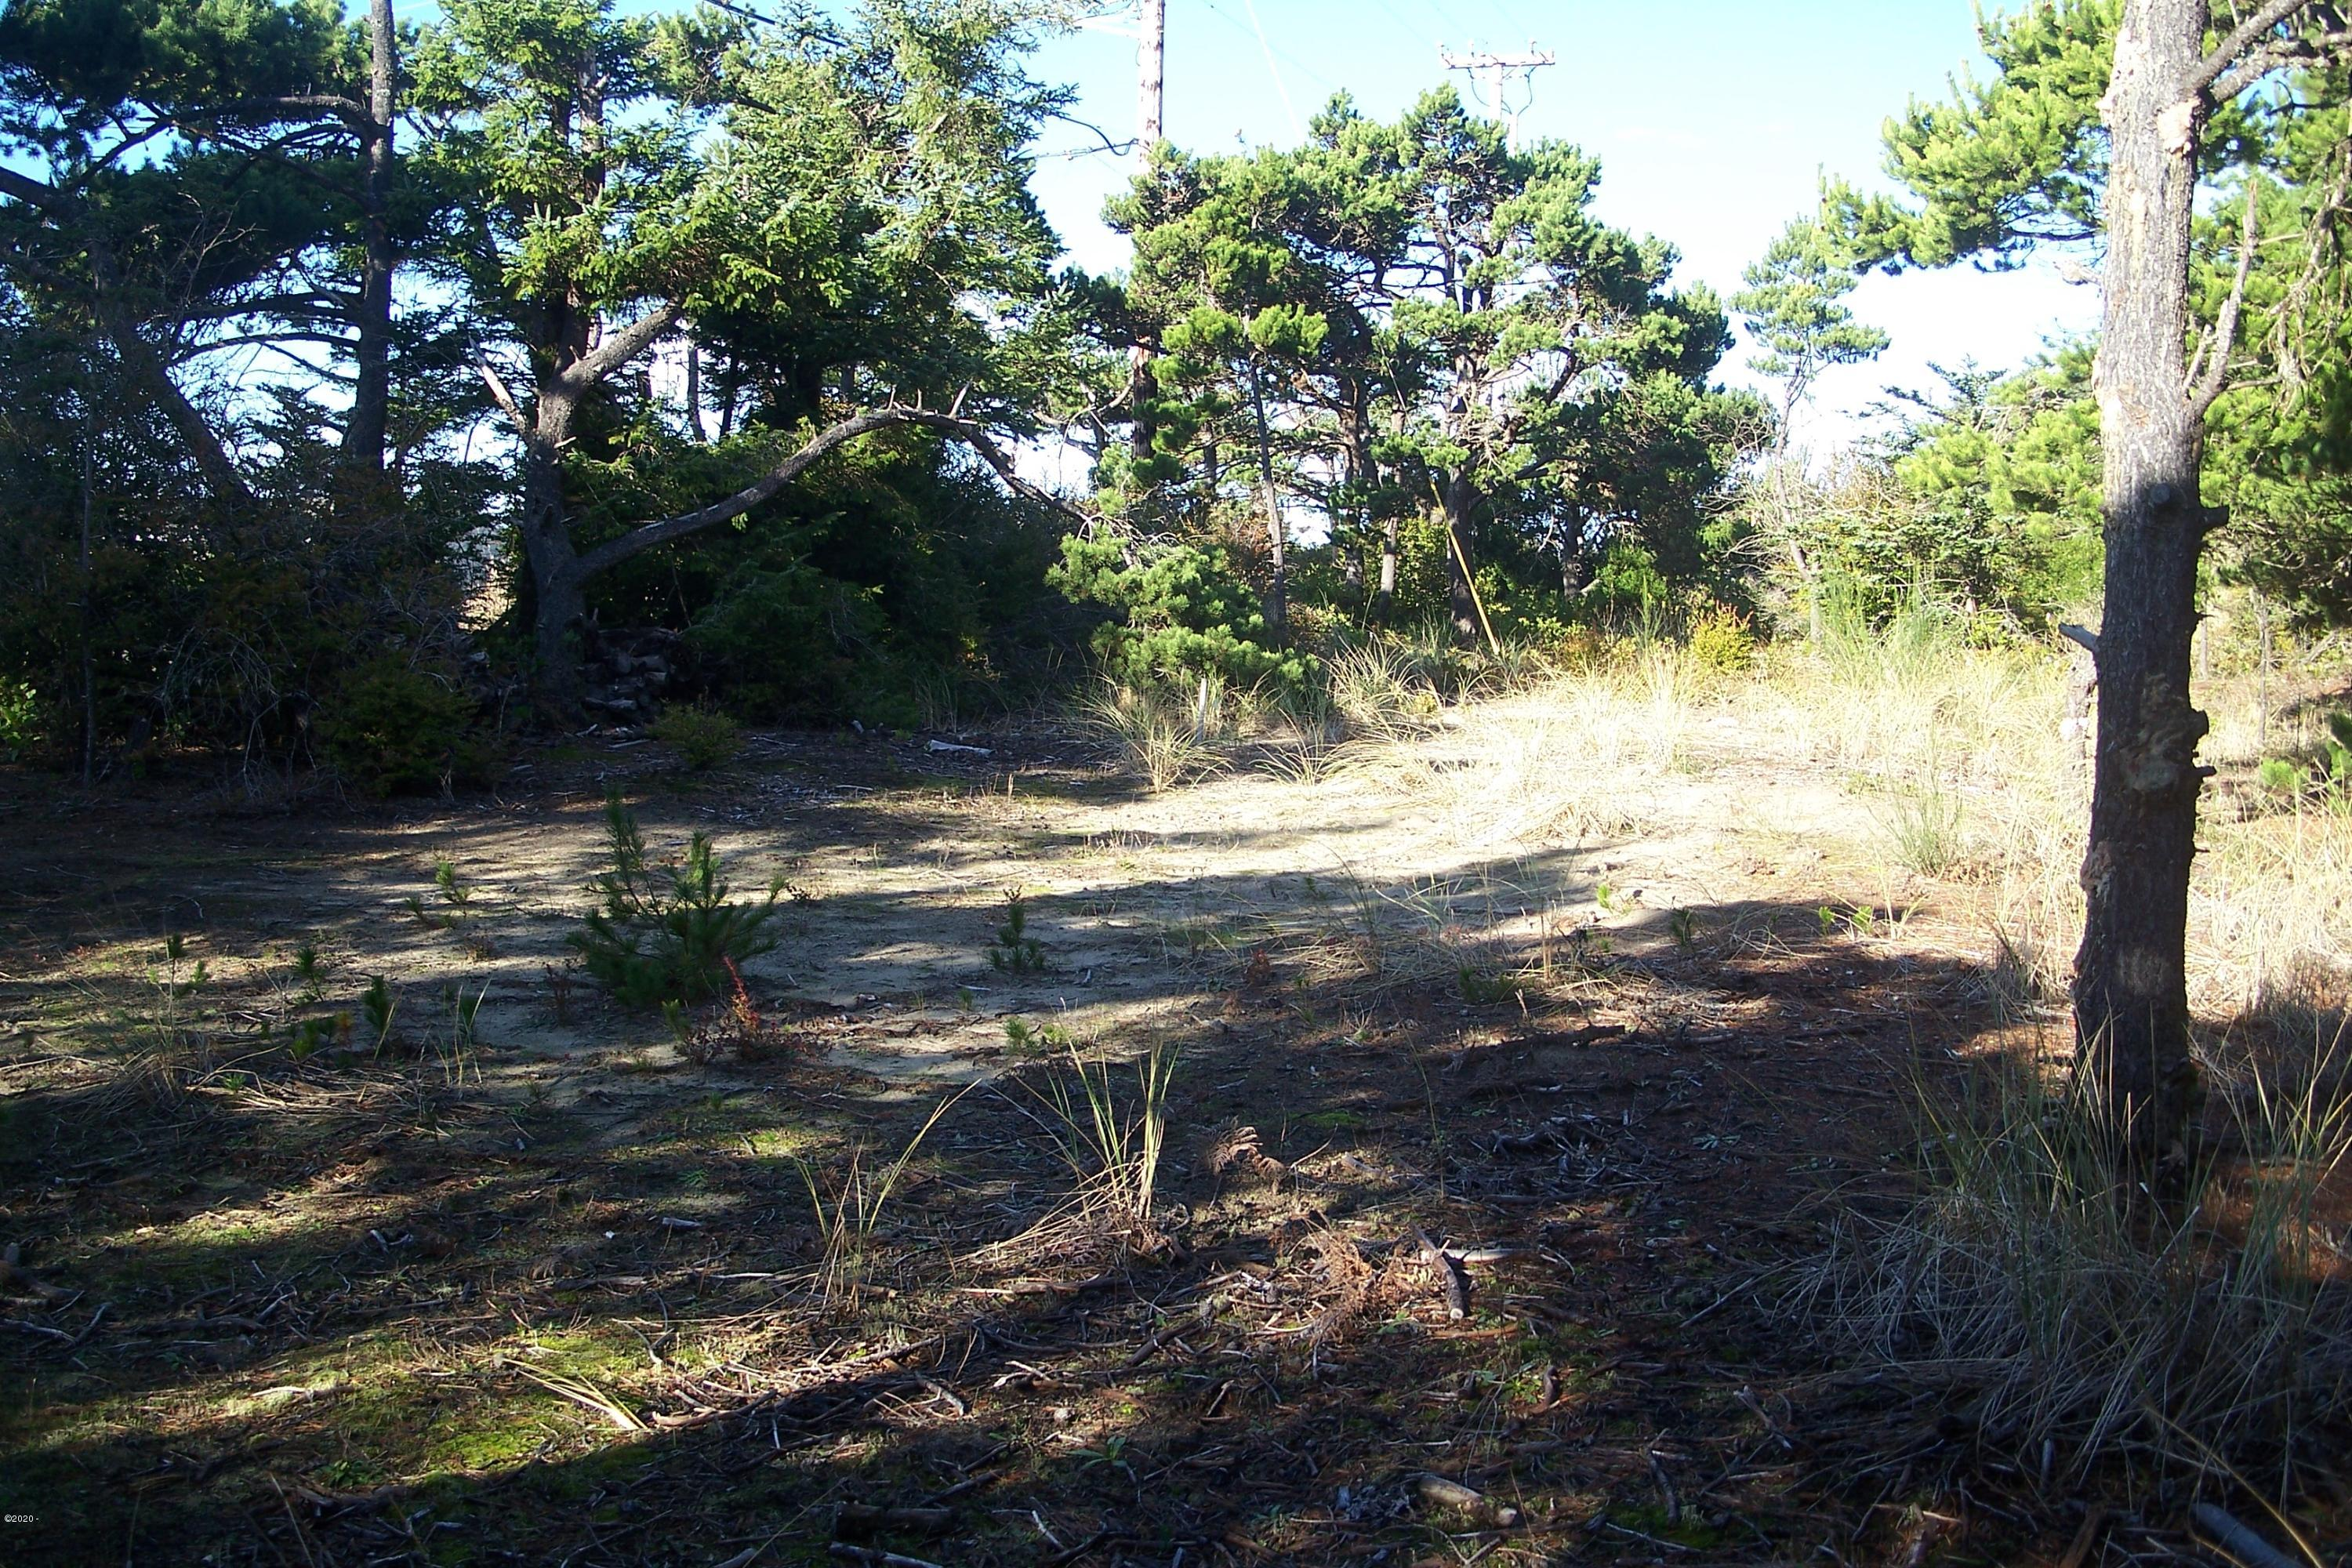 1401 NW Bayshore Dr, Waldport, OR 97394 - Buildable area